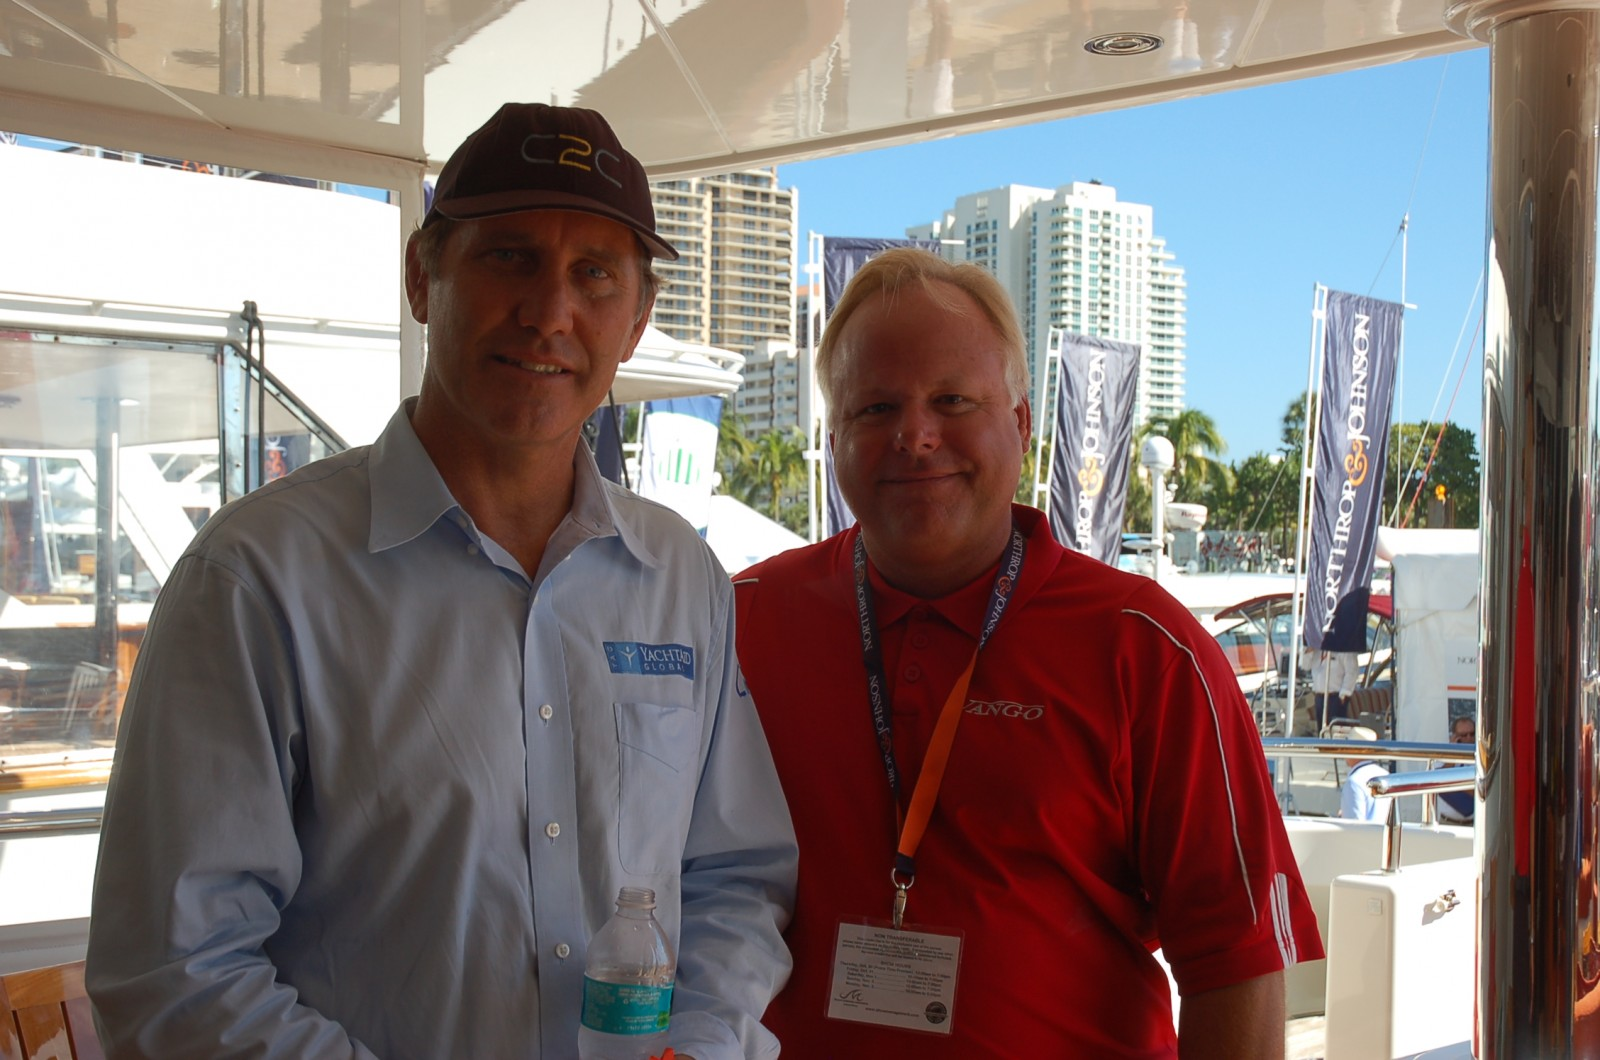 Capt. Mark Drewelow of YachtAid Global and Capt. Dave of M/Y Vango. 3771: Broker Eric Dahler of Camper & Nicholsons, YAG Events Advisor Dhardra Blake and YAG founder Capt. Mark Drewelow aboard M/Y Vango yesterday. PHOTOS/LUCY REED